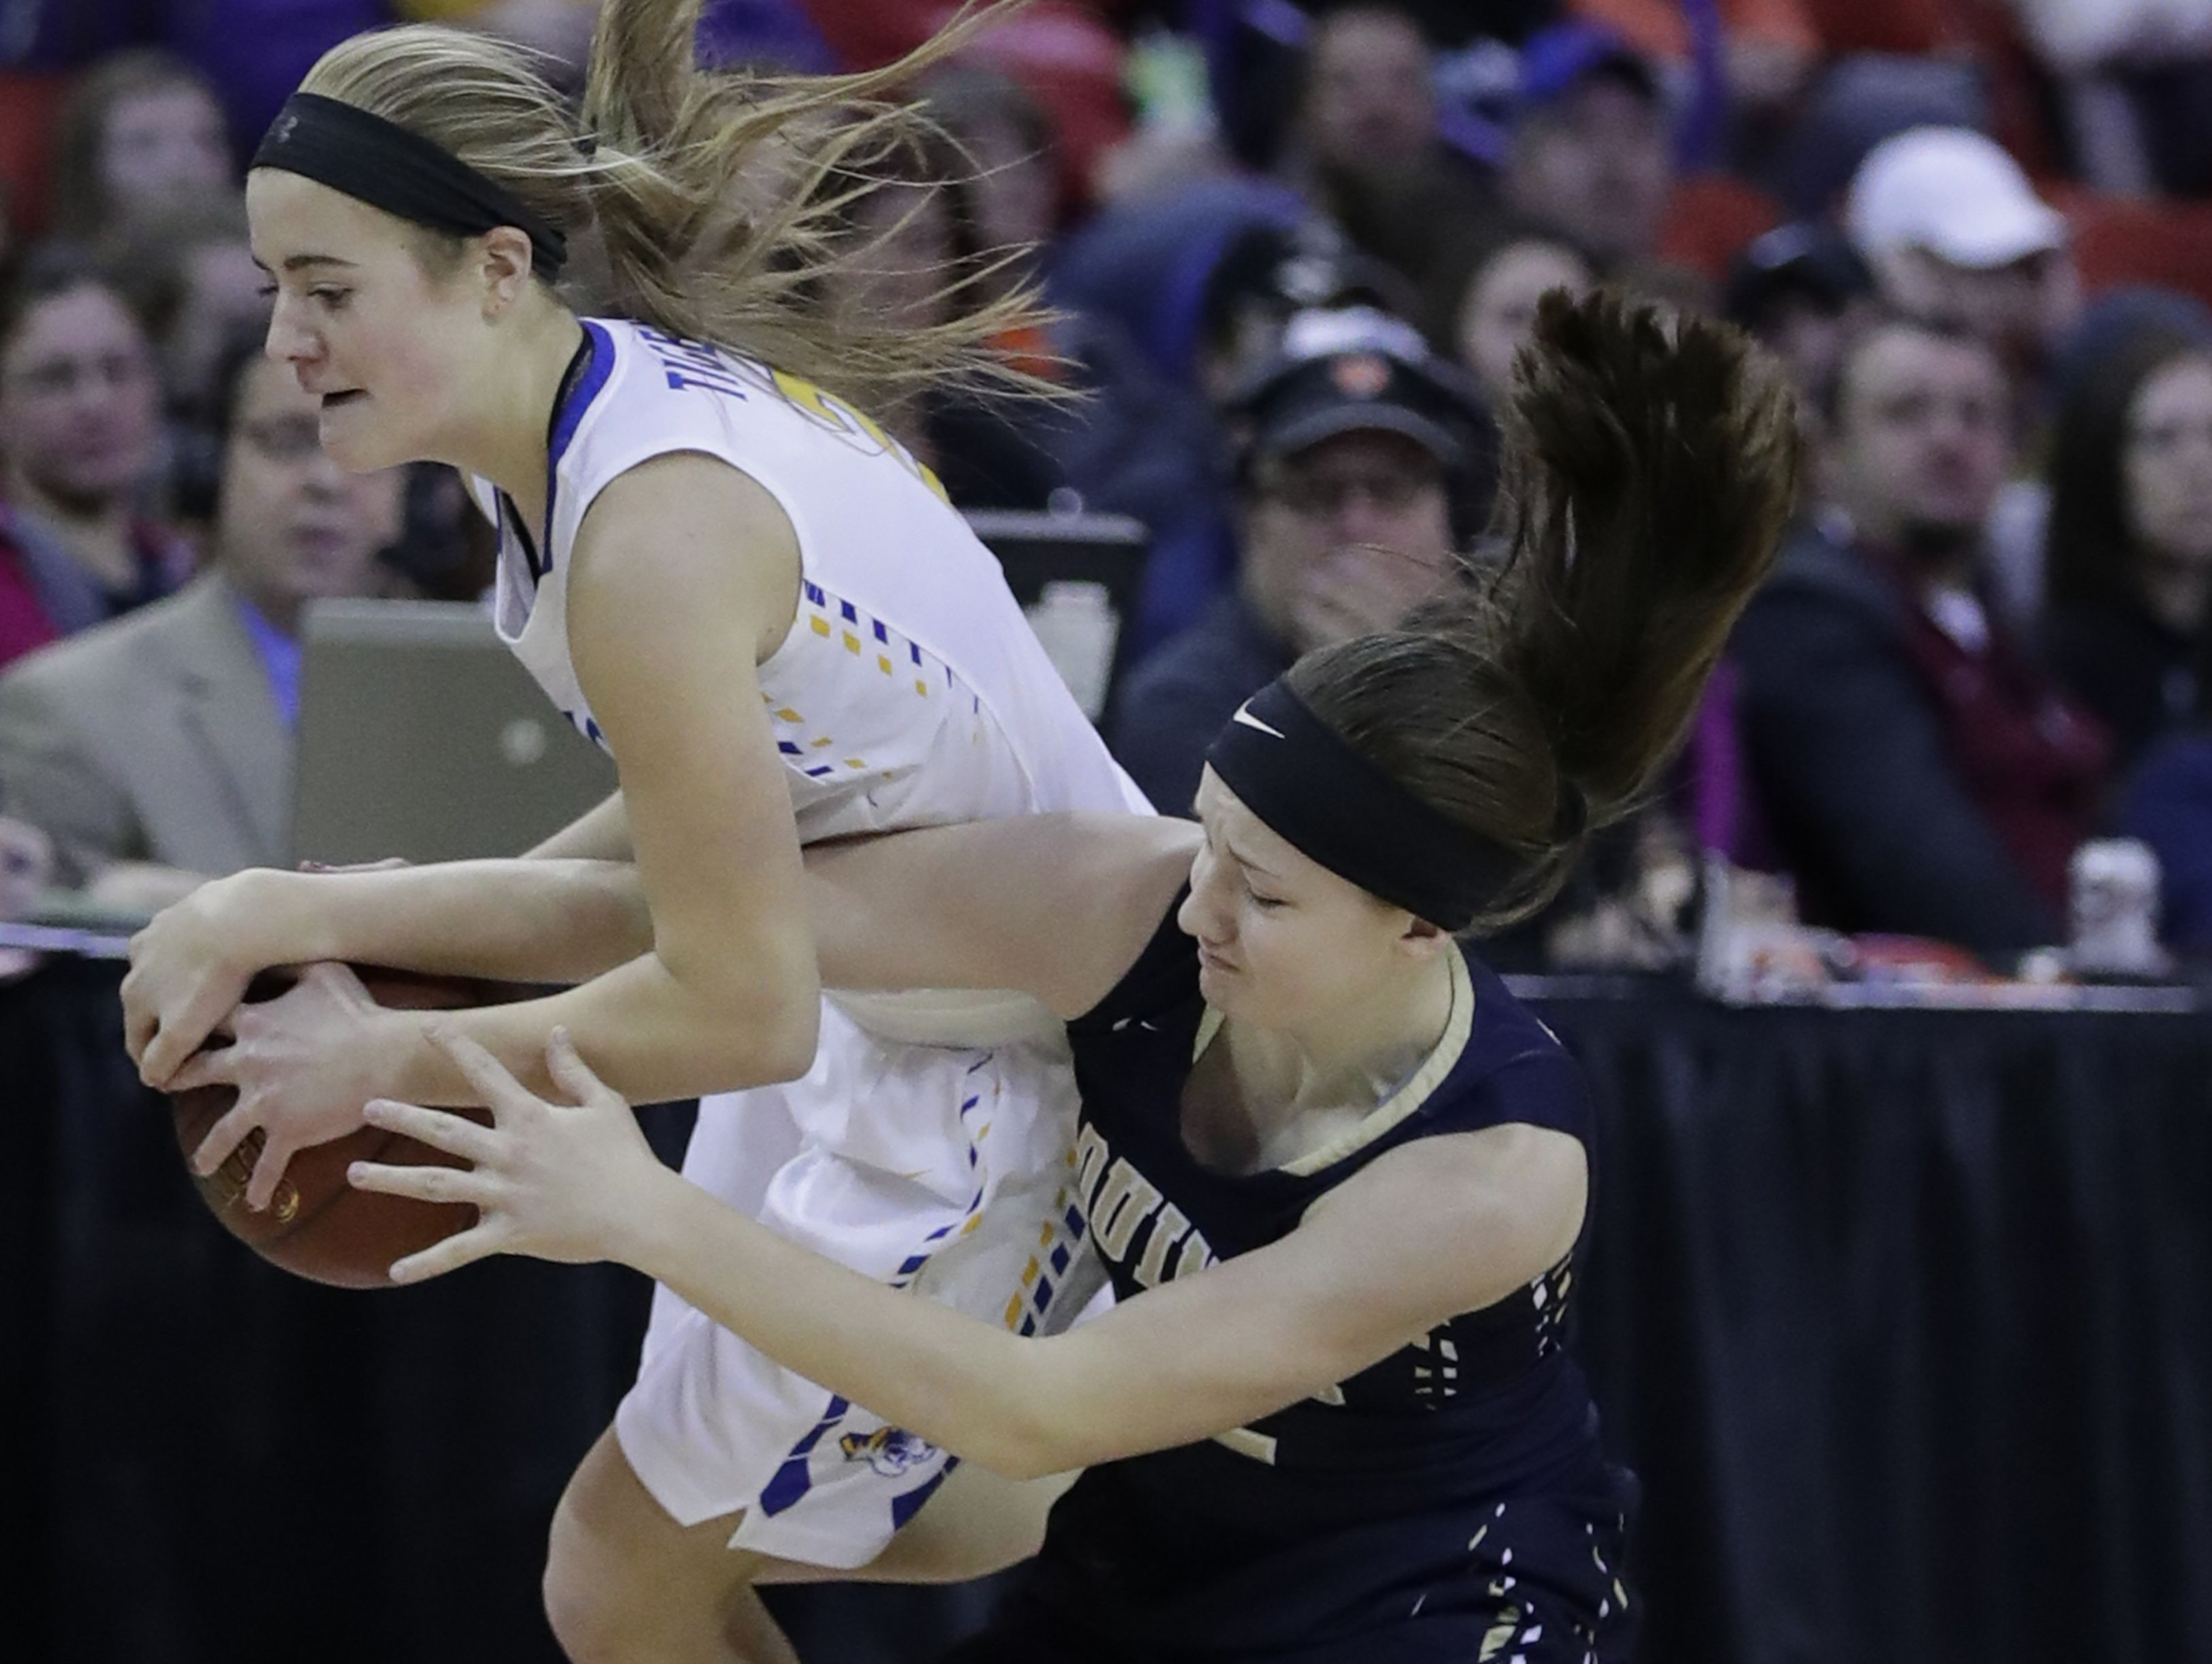 Howards Grove's Ashley Reinemann, left, battles for a loose ball against Aquinas' Kayla Bahr during the WIAA Division 4 State Tournament final girls basketball game Friday at the Resch Center.